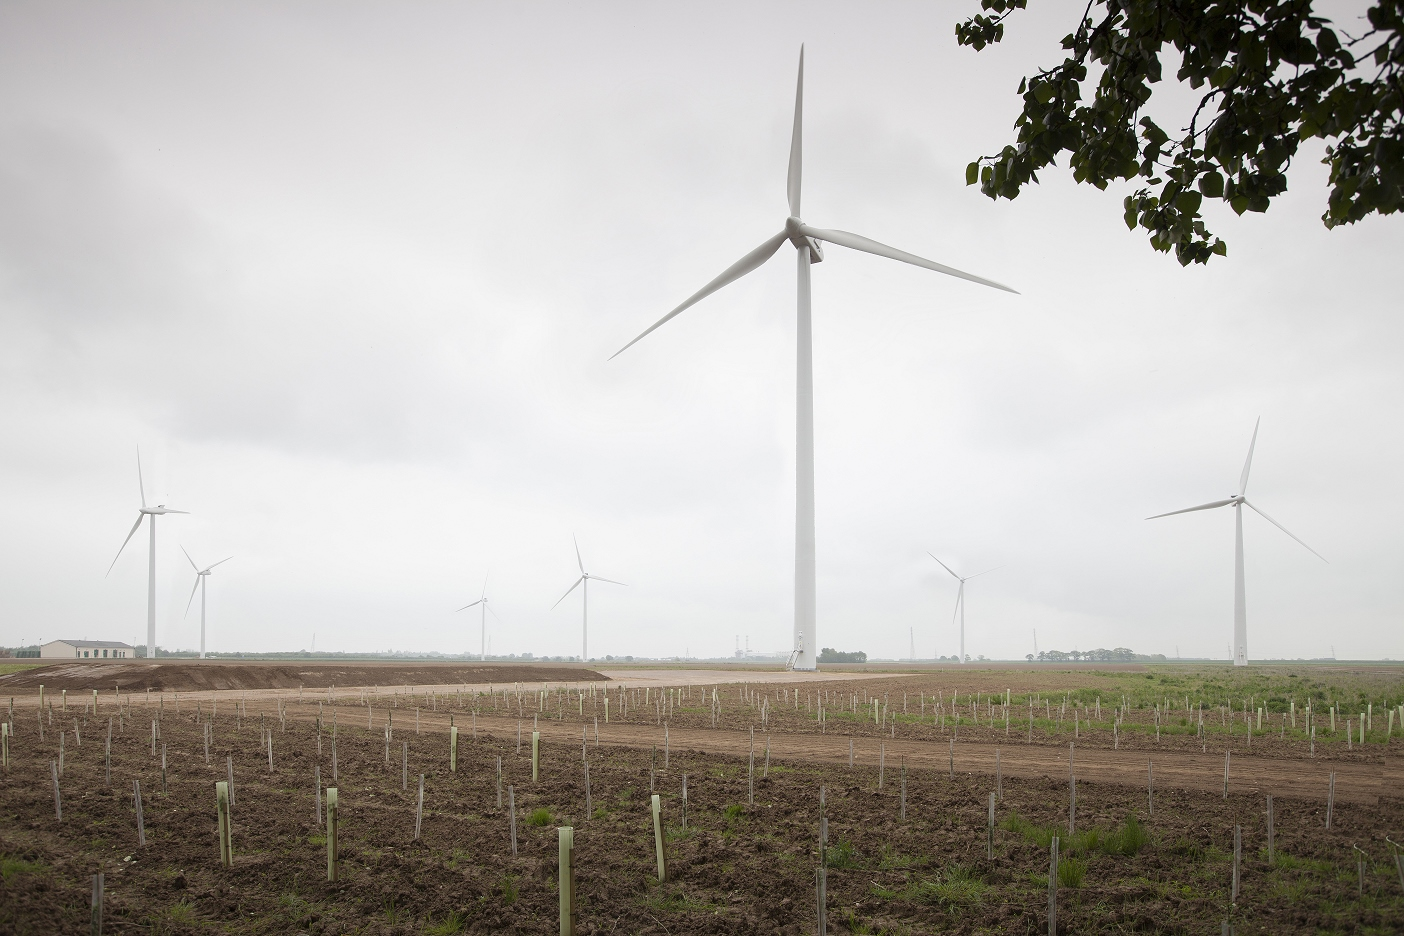 The Grange Wind Farm in Lincolnshire, which has seven turbines of similar height to those that will be installed at Turncole Farm. Photo by Chris Whitehead.